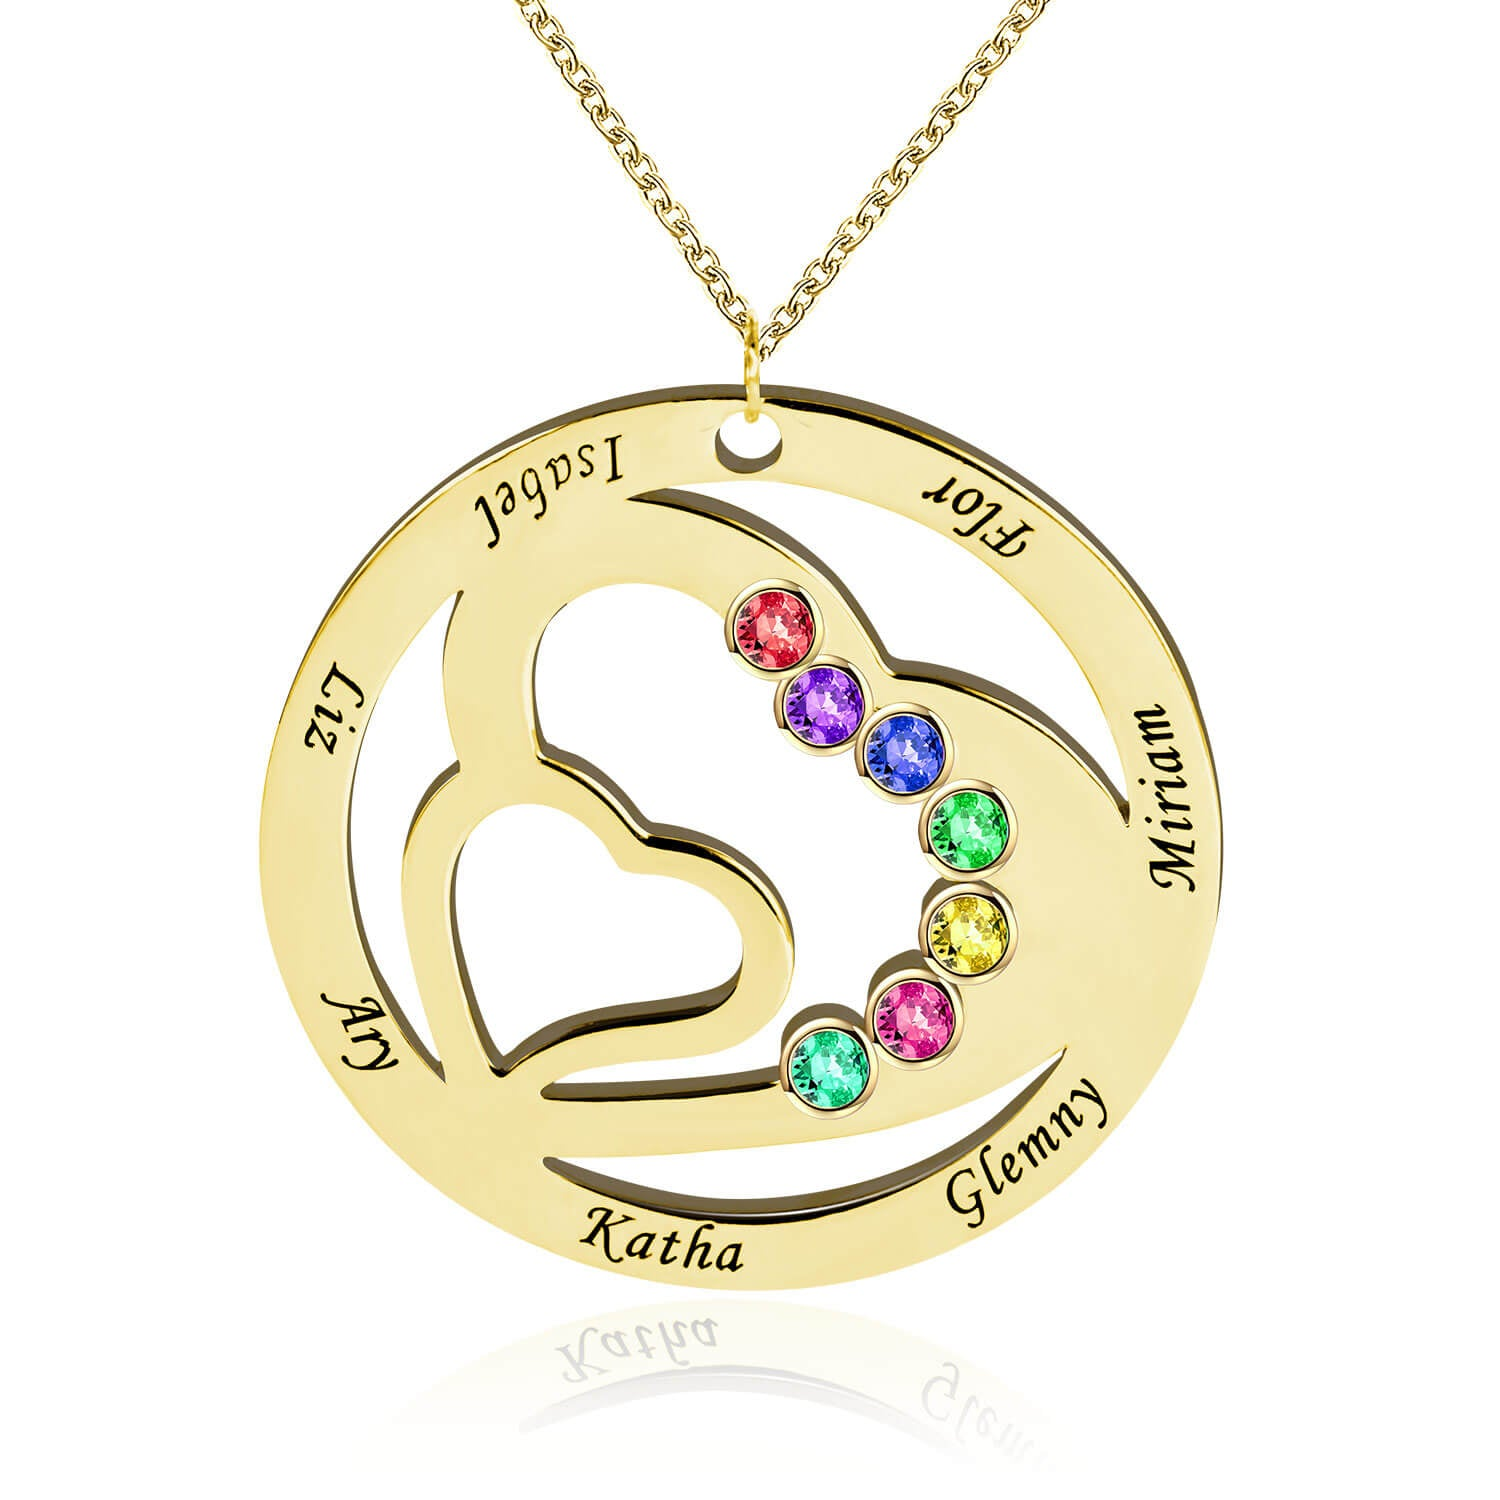 Mother/Grandmother Necklace With Kids Names